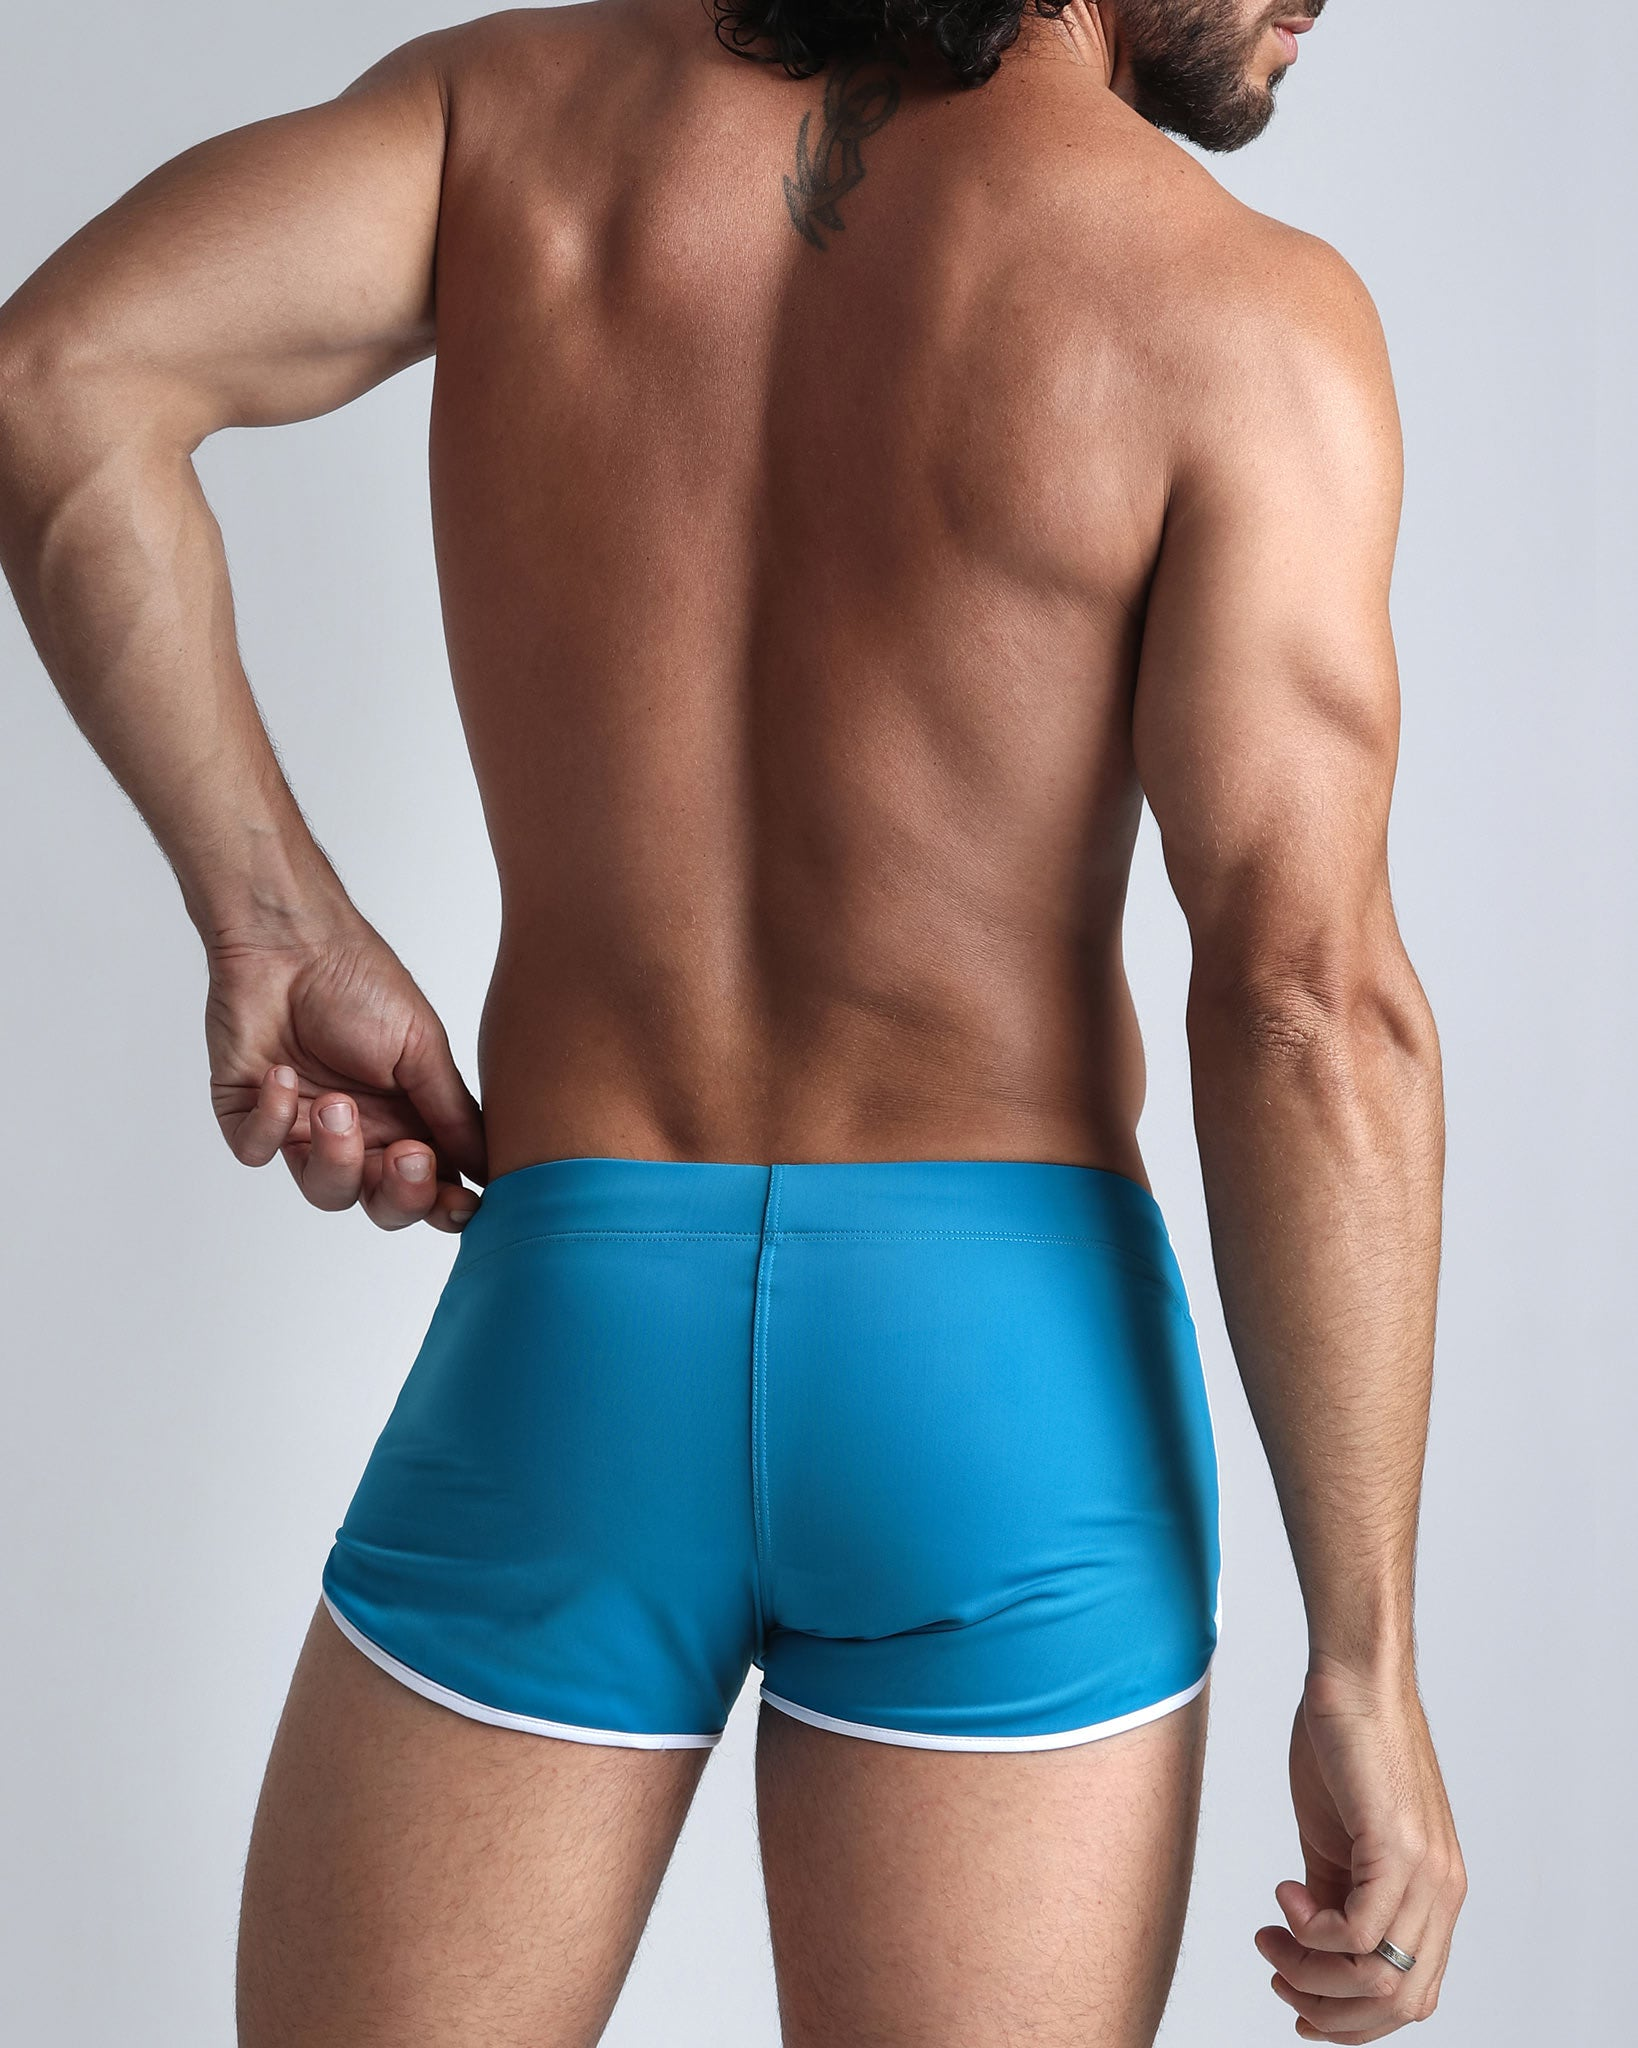 Sporty Swim Shorts Bang Clothes Men Swimwear Swimsuits